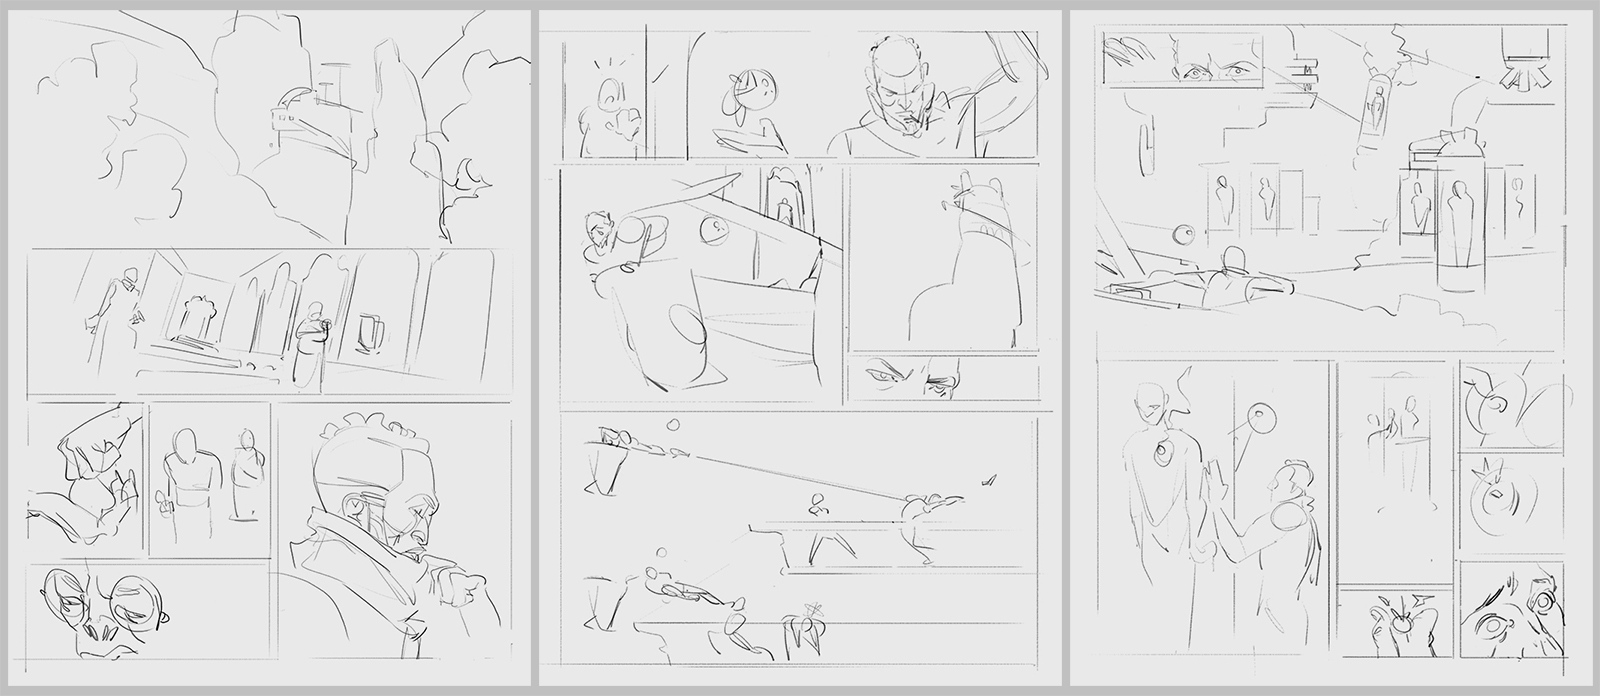 3 super rough, non-sequential pages taken from Shof's 6 page story